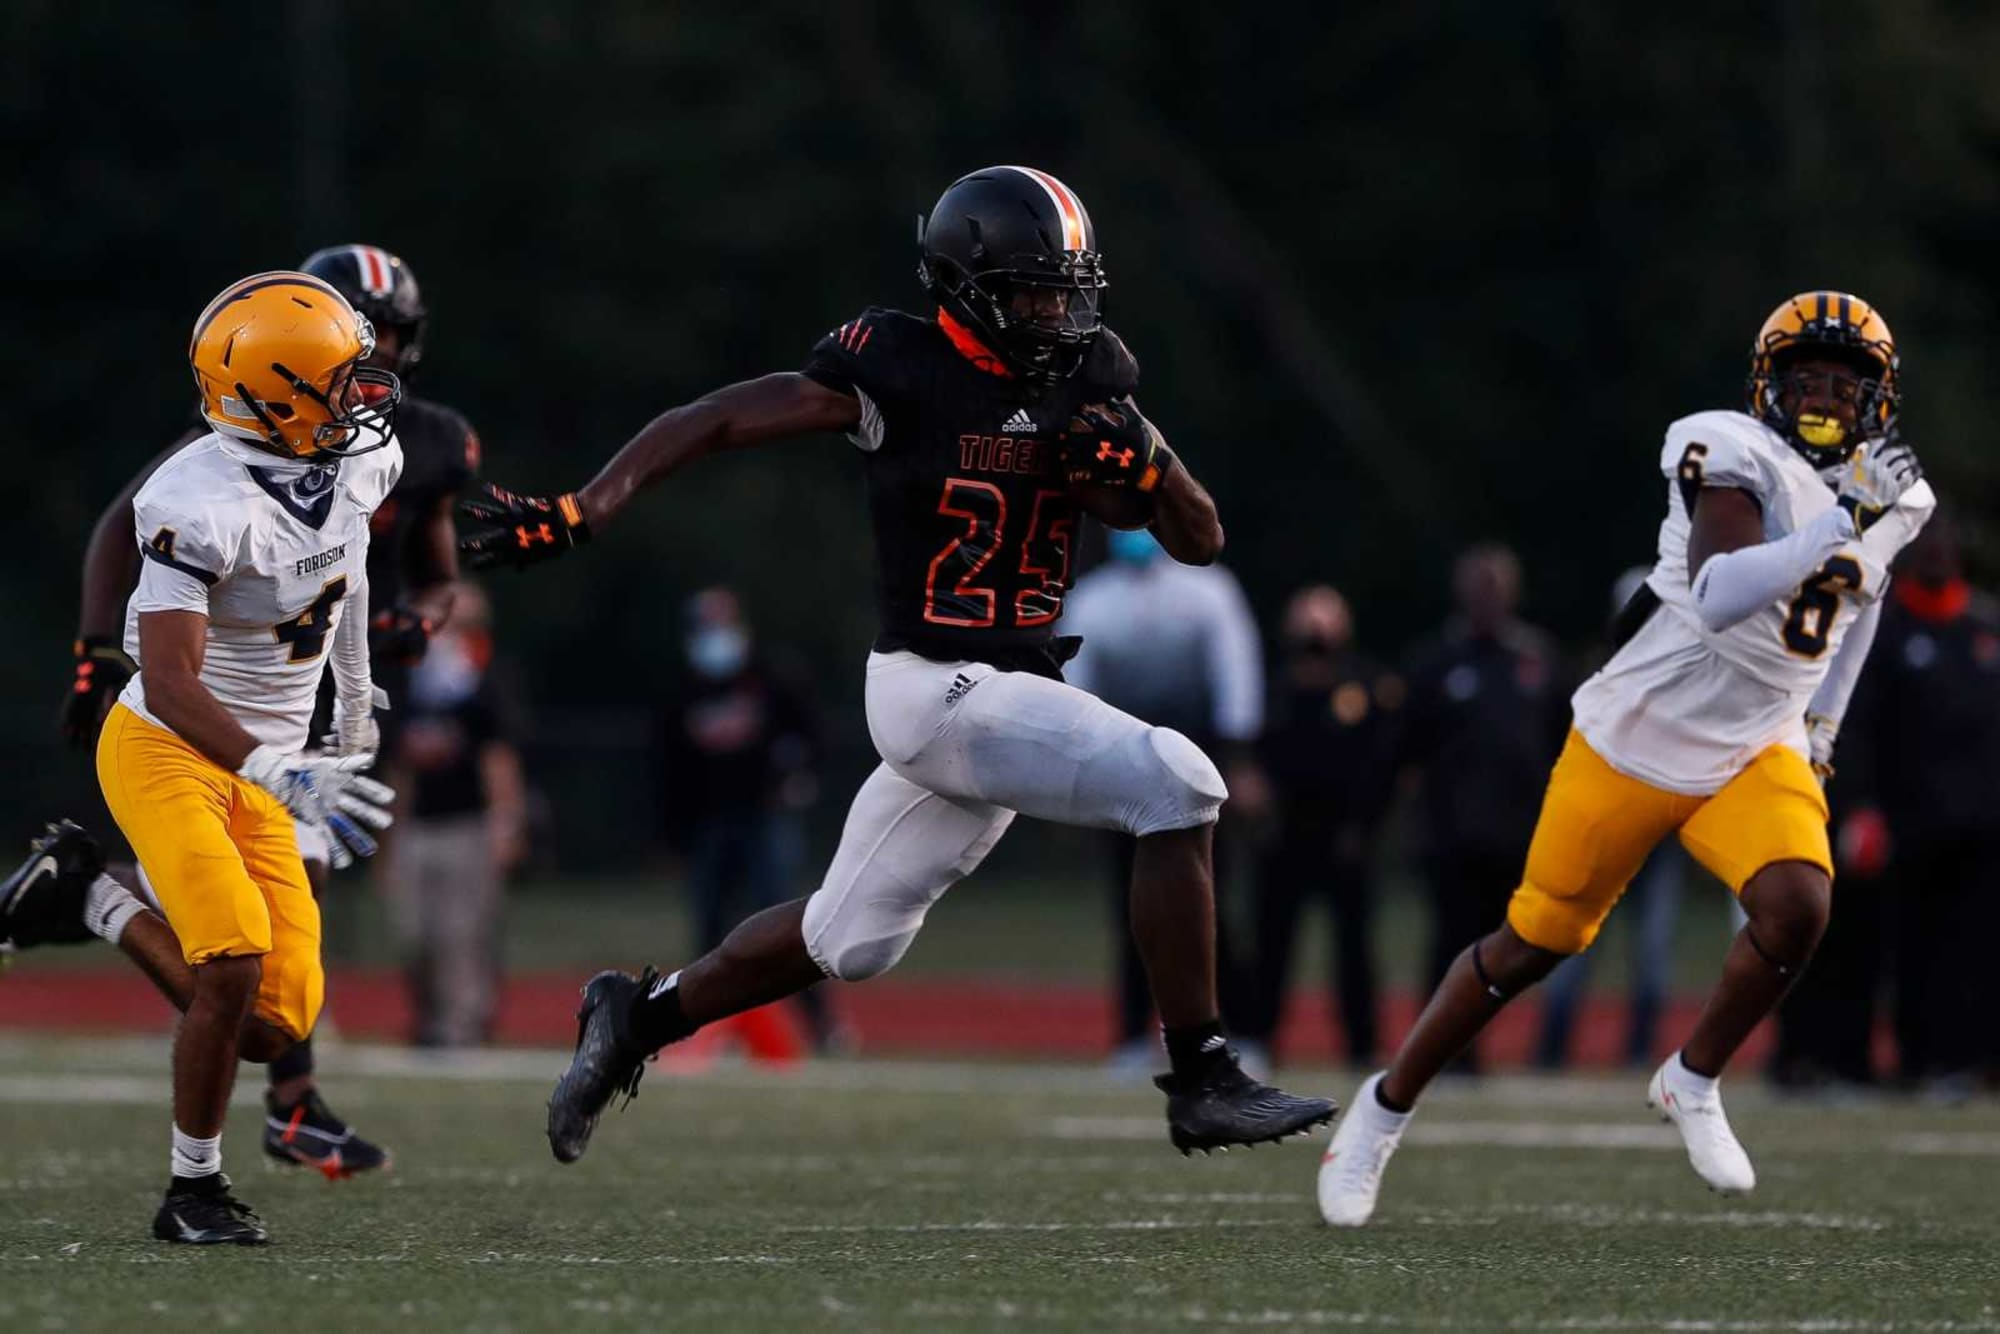 Michigan Football: Offer to in-state LB leads to crystal ball projection